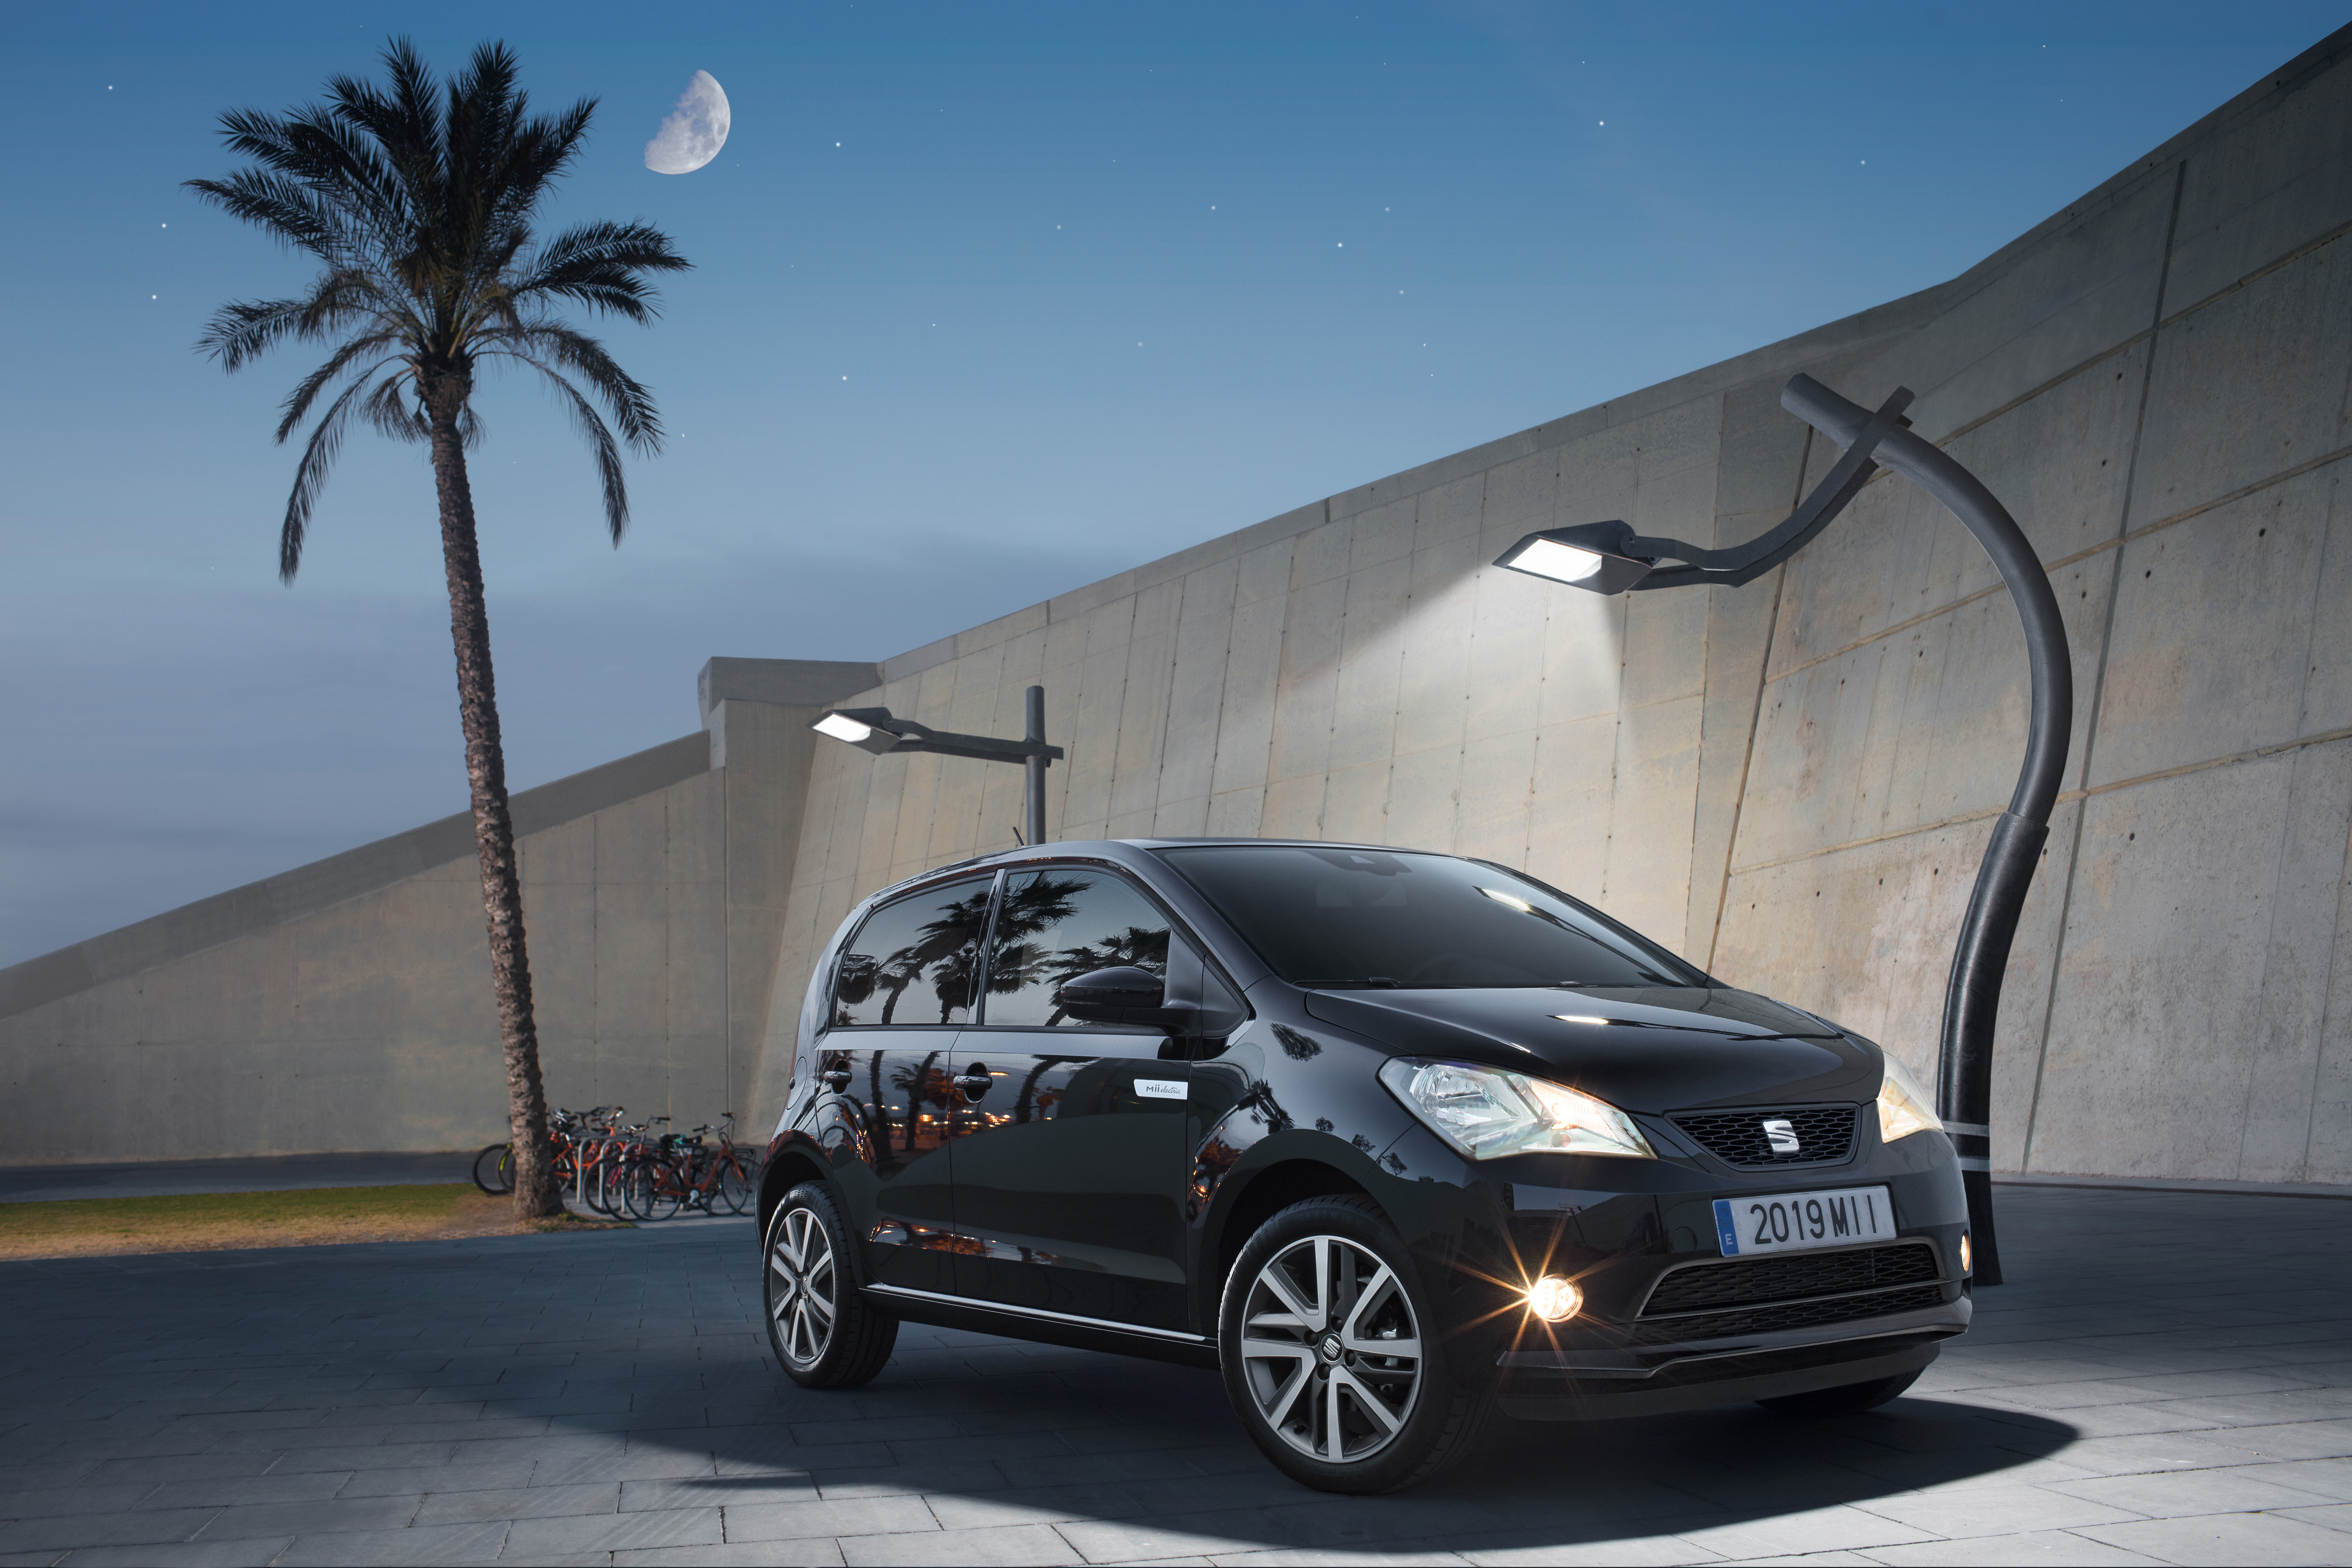 SEAT recharges city driving with the Mii electric